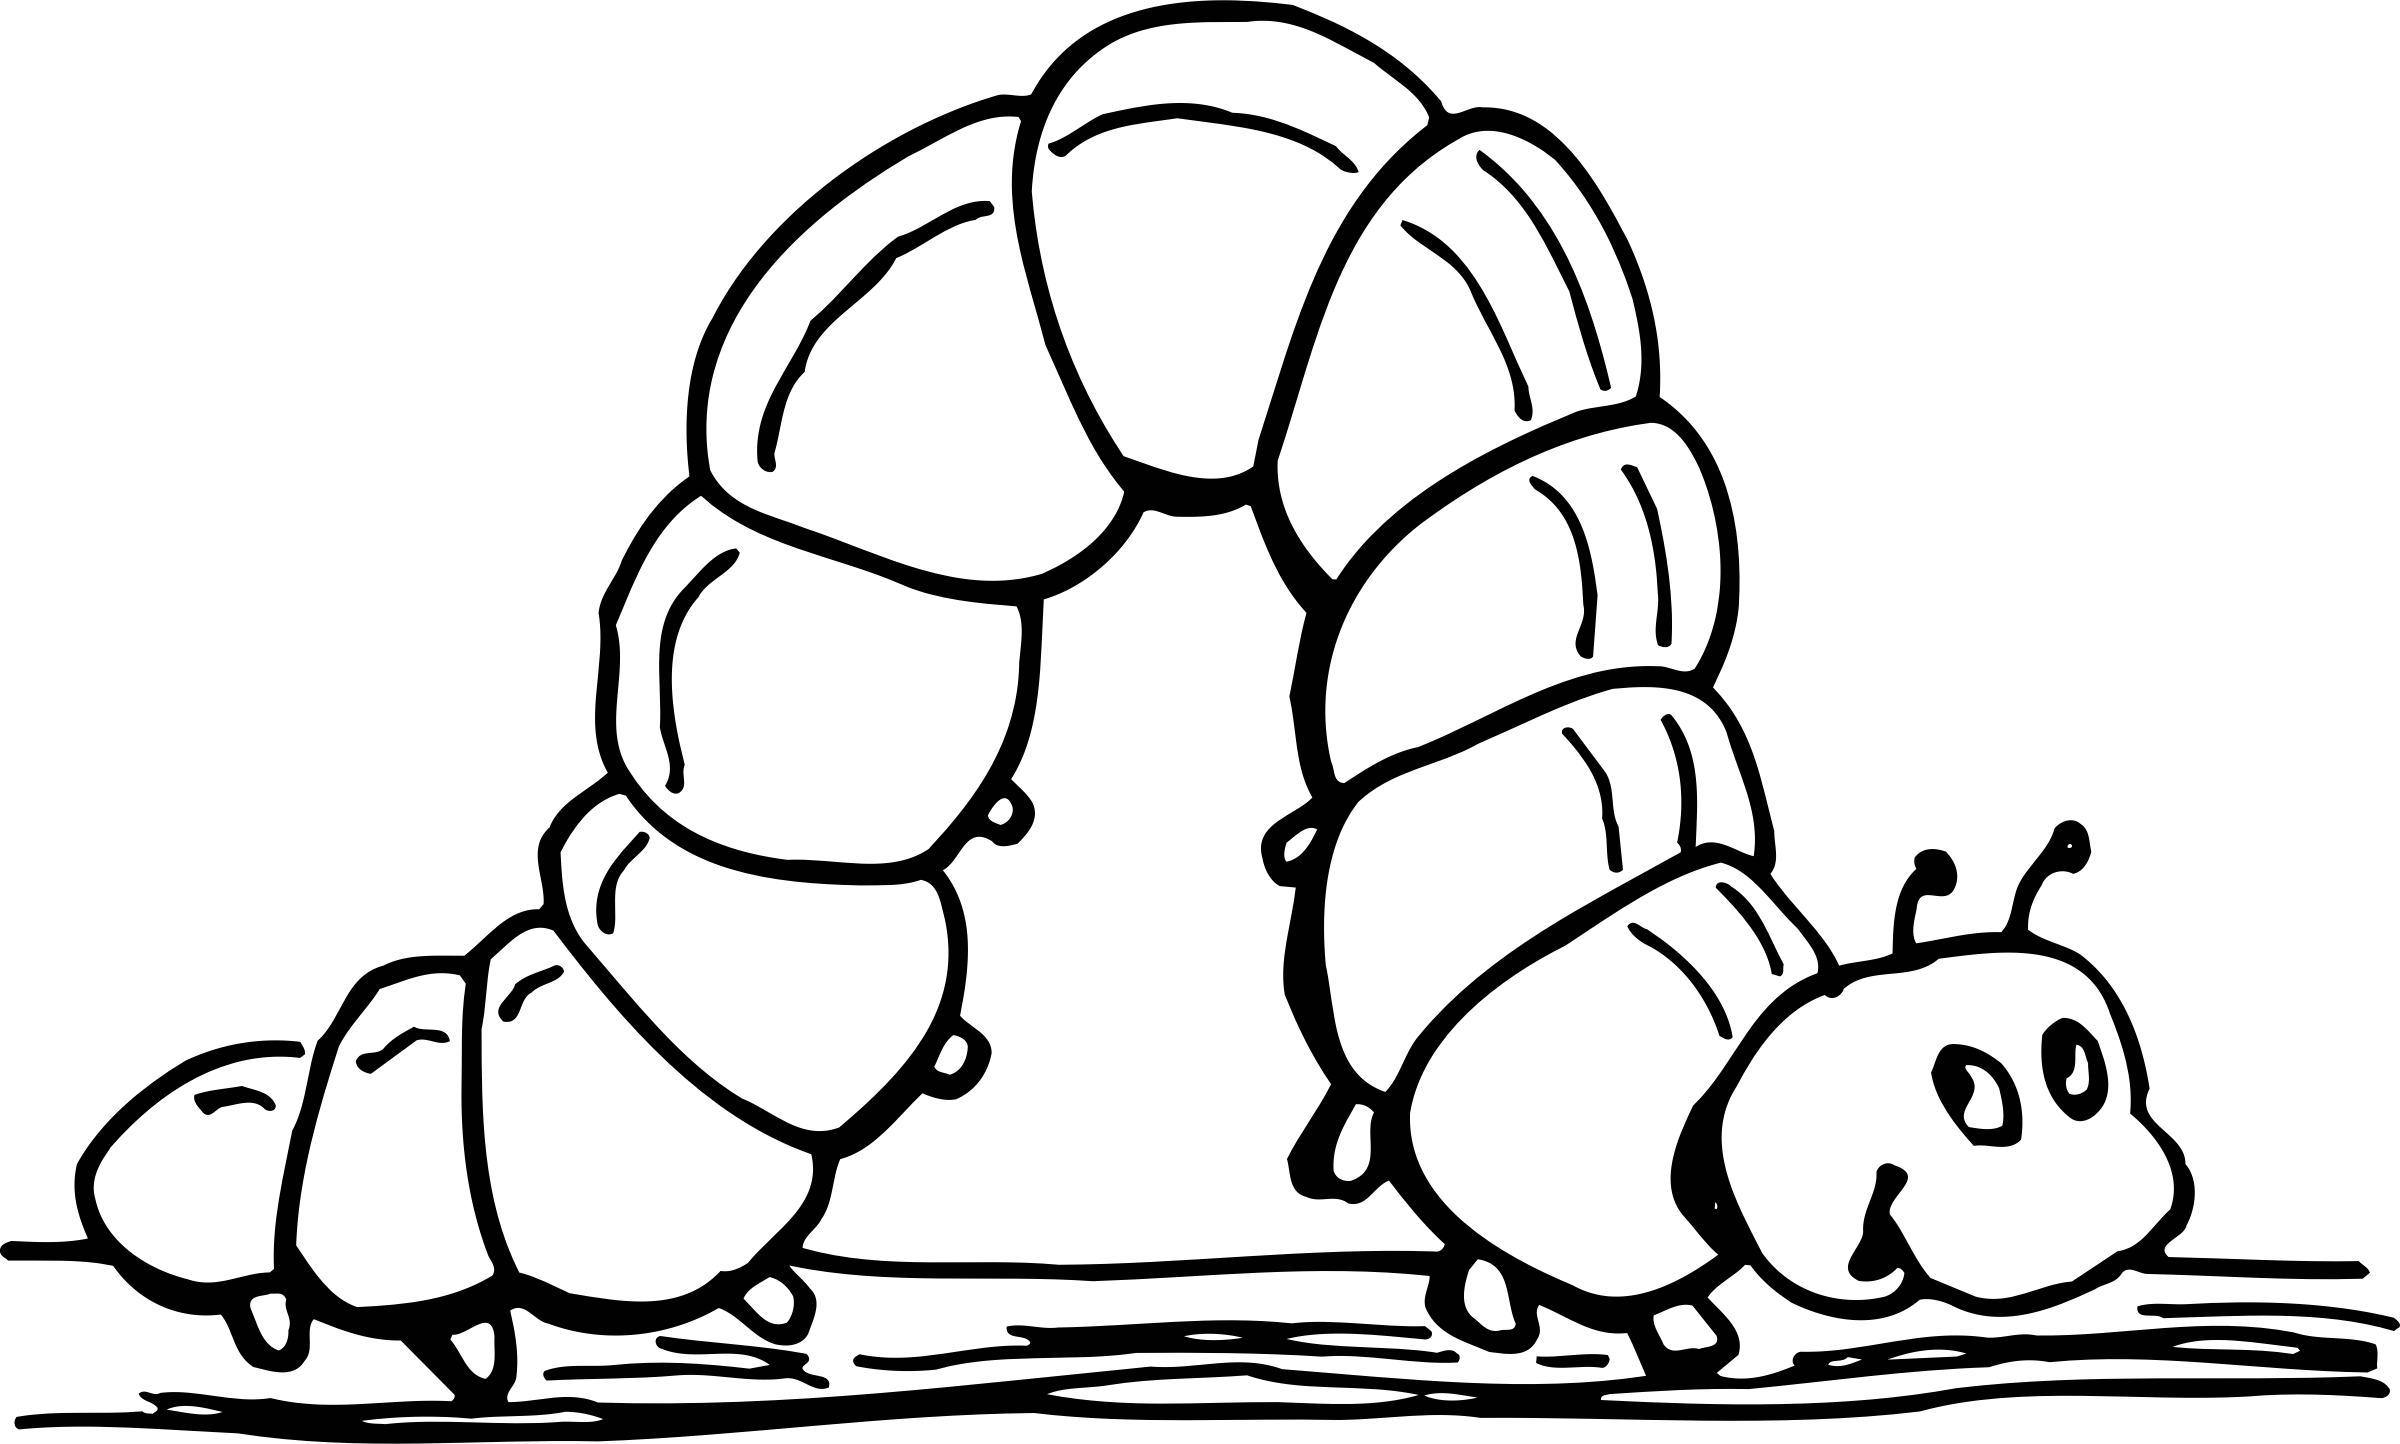 Worm clipart wiggle worm. Inchworm drawing at getdrawings